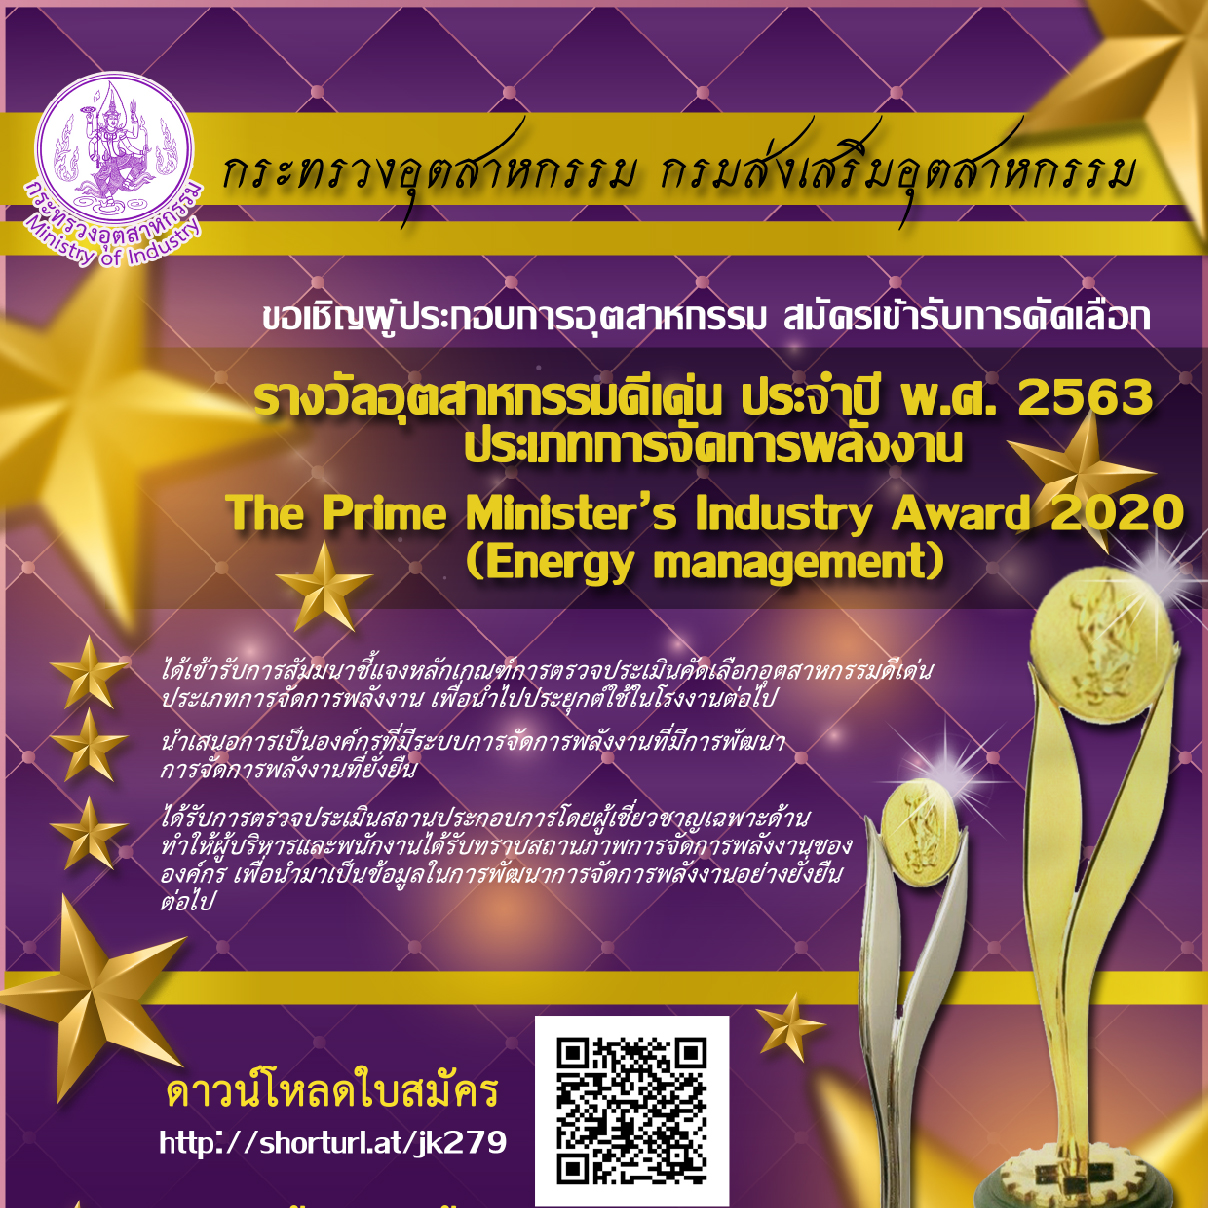 The Prime Minister's Industry Award 2020 (Energy management)